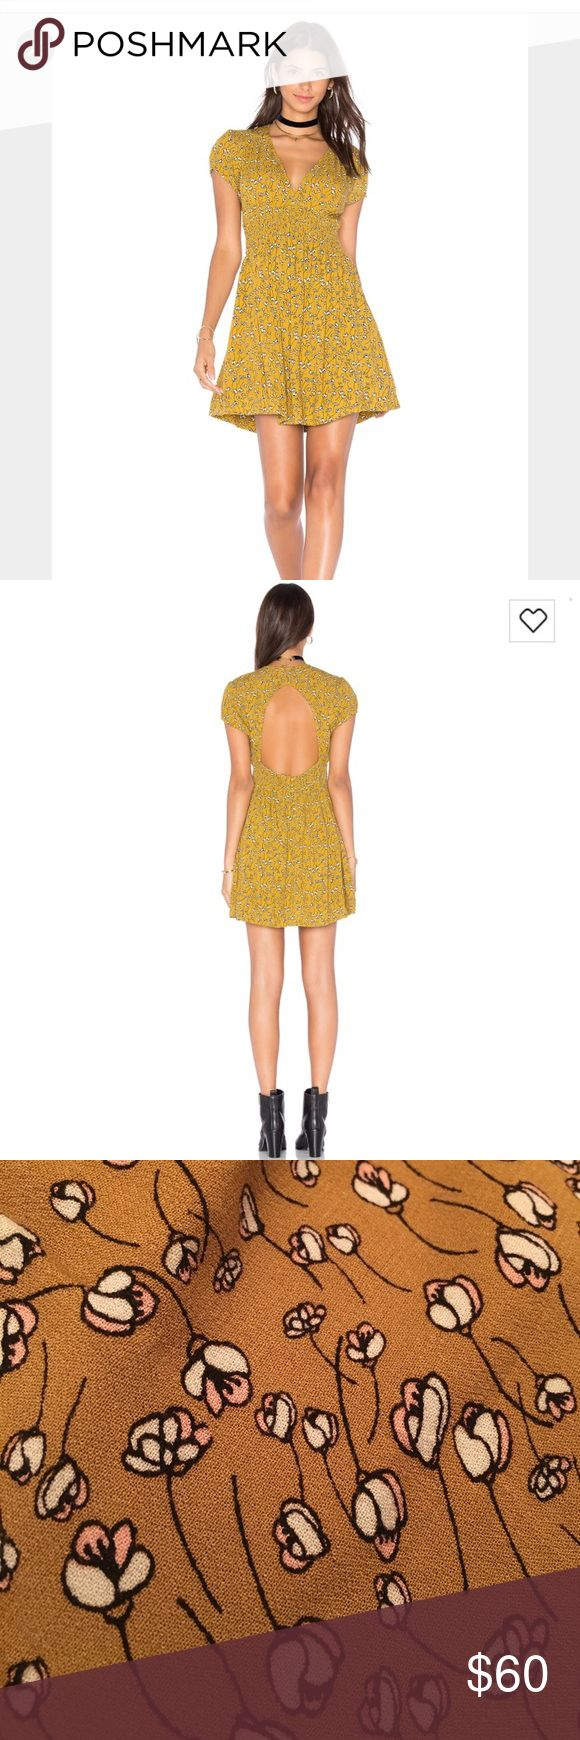 """🌷🌿Beautiful Free People Floral dress 🌿🌱 ⭐️Beautiful Free People mustard colored Floral dress.. elastic band gives definition to ur waist, and cut out on back gives this dress extra flare and makes this the perfect spring and summer dress⭐️🌱.. New w tags . Make an offer ⭐️🌿 size chart included .. shoulder to bottom hem is  approx 33"""" 🌿⭐️🌈 Free People Dresses Mini"""